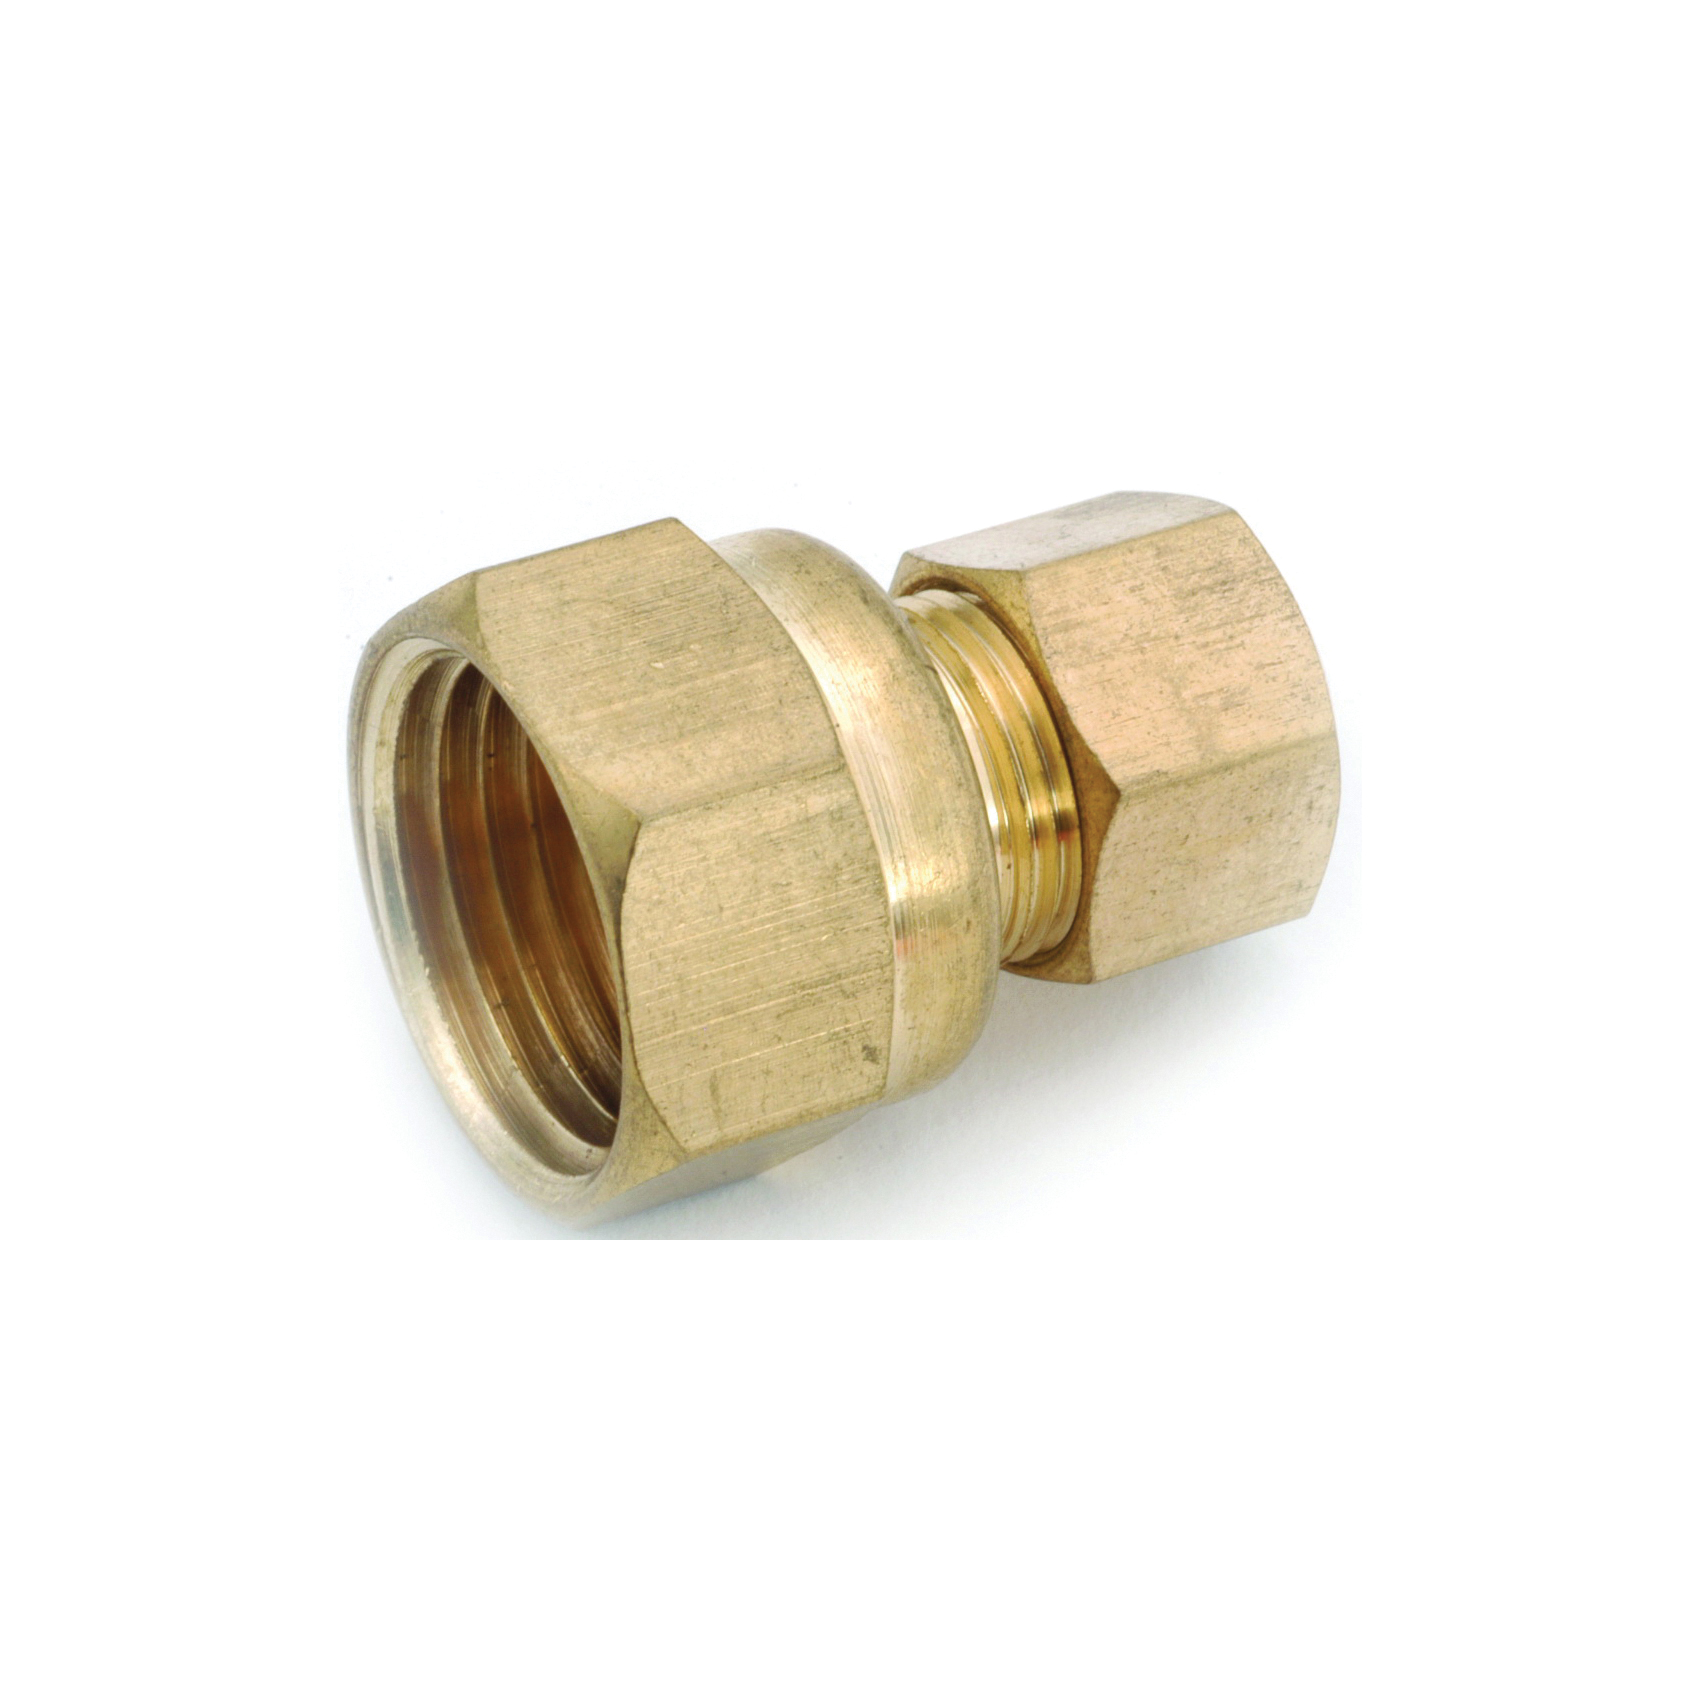 Picture of Anderson Metals 750066-1408 Tubing Coupling, 7/8 x 1/2 in, Compression x FIP, Brass